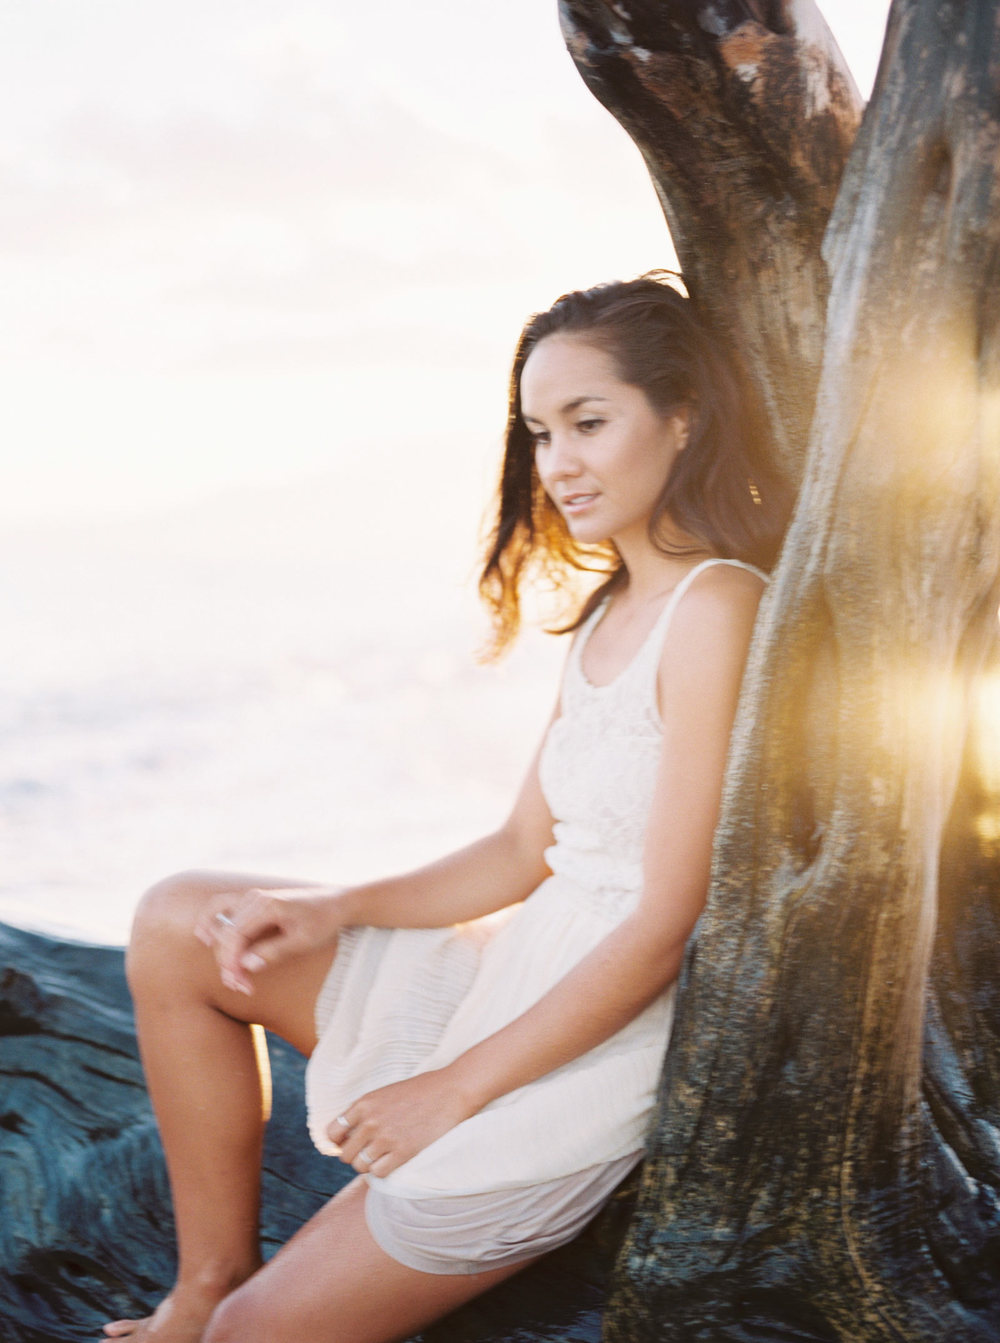 Maui Beach Portrait Photography